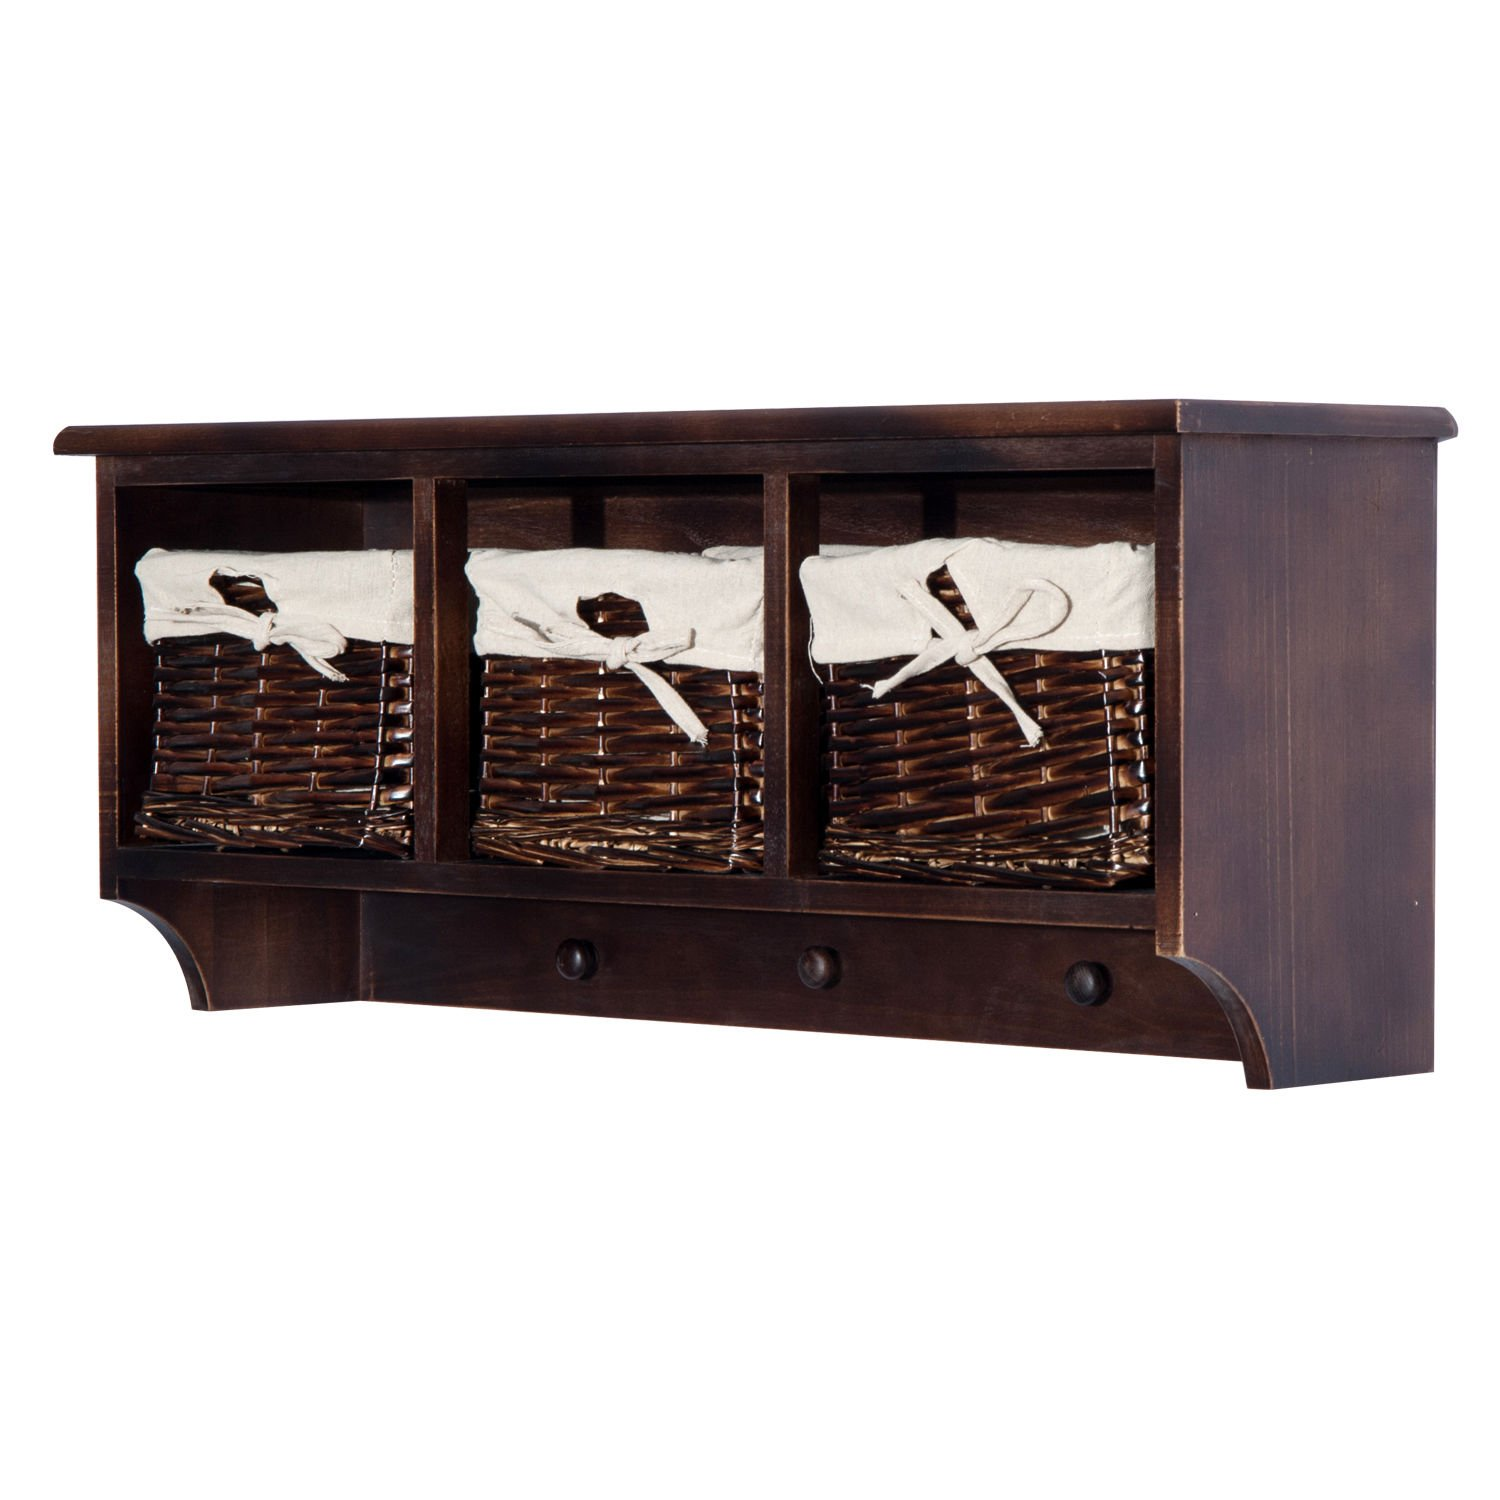 "HOMCOM 32"" Rustic Country Floating Storage Shelf W/Coat Hooks and Removable Wicker Baskets - Coffee Woodgrain"